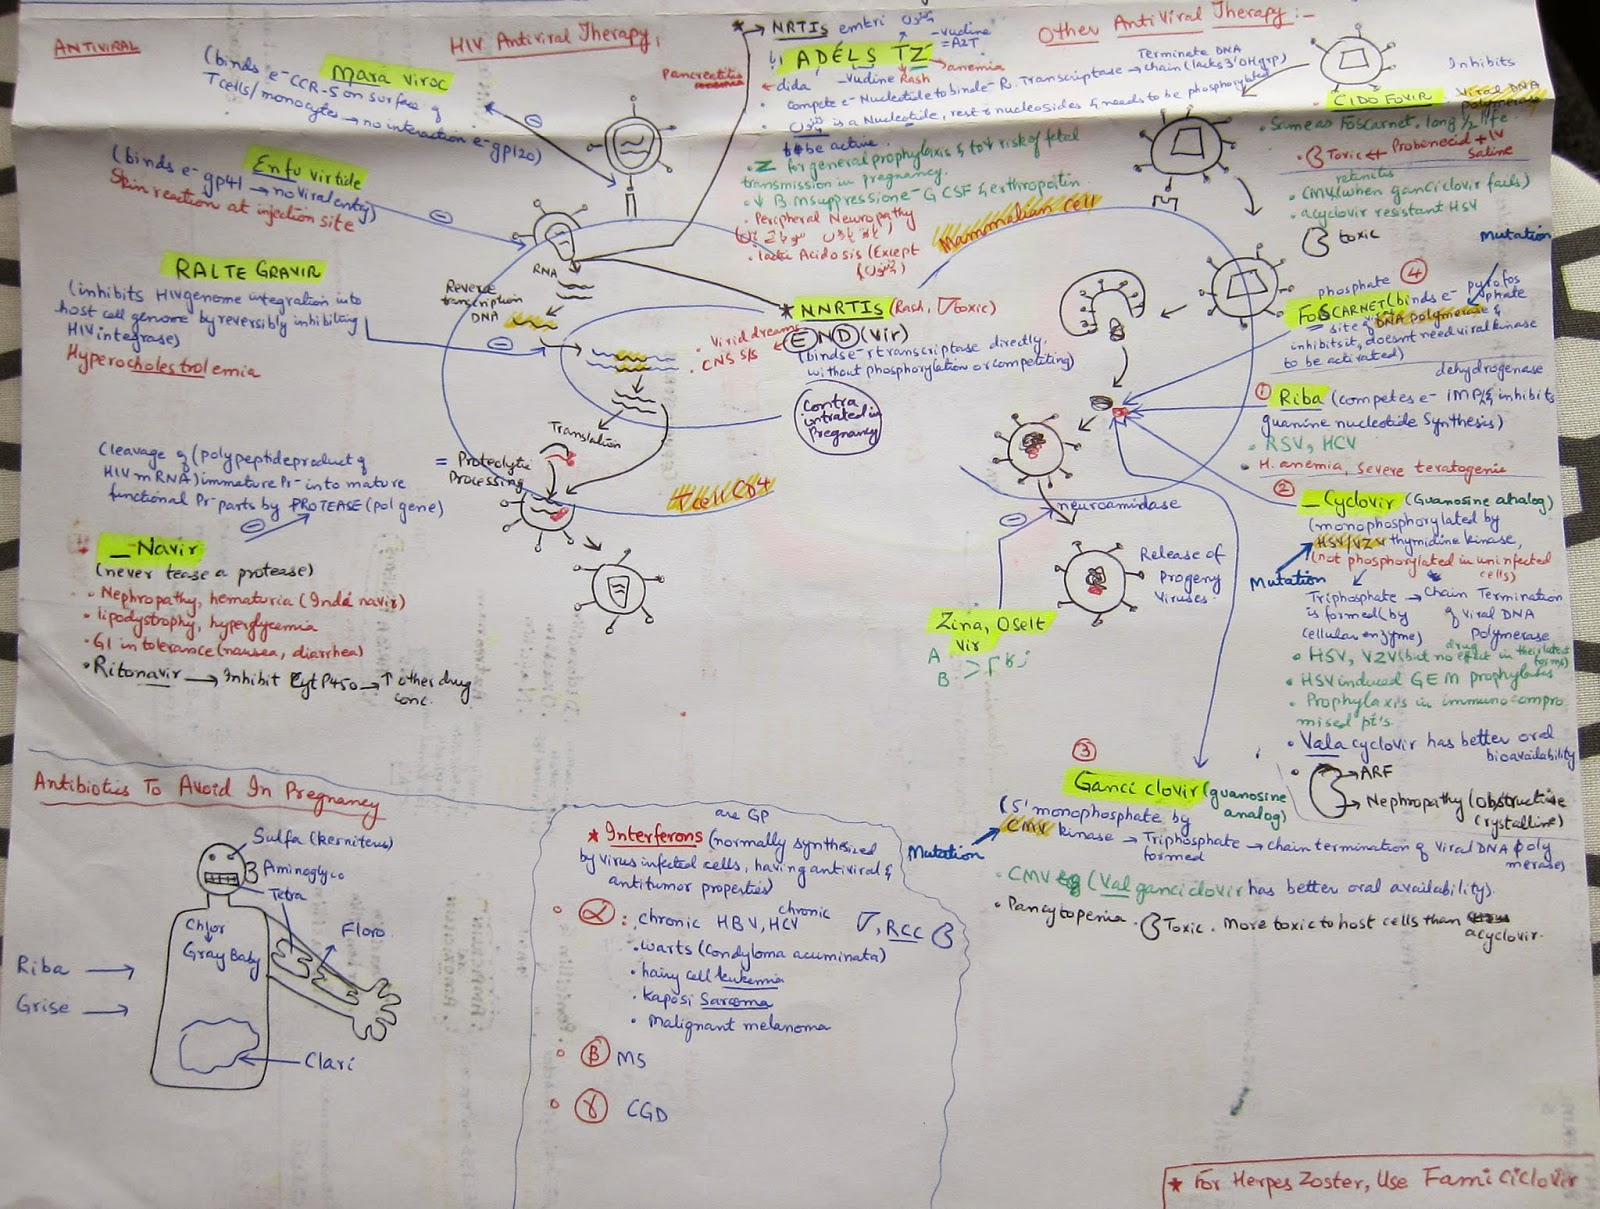 microbiology notes Find great deals on ebay for microbiology notes shop with confidence.